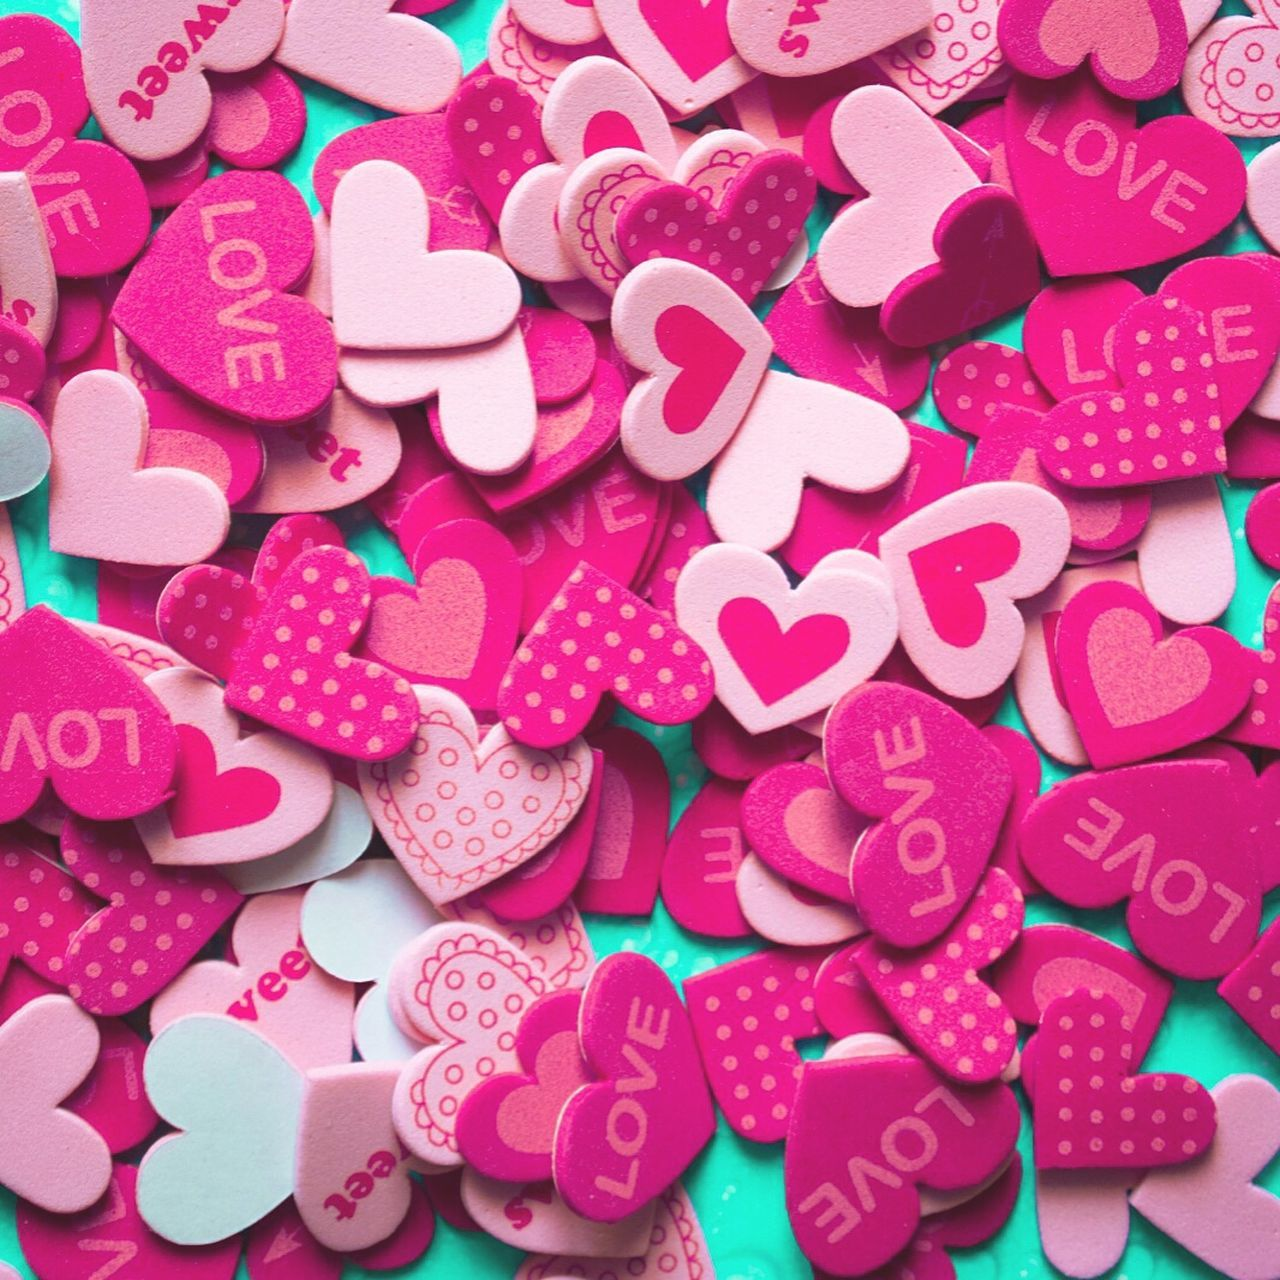 Love Lovely Valentine's Day  Valentine Heart Hearts Pink Colors Full Frame Pattern Light Enjoying Life Imperfection Is Beauty Hello World Showcase July Taking Photos Close Up Pattern, Texture, Shape And Form Words Art Point Of View Nopeople Sweet Pink Hearts Beautiful